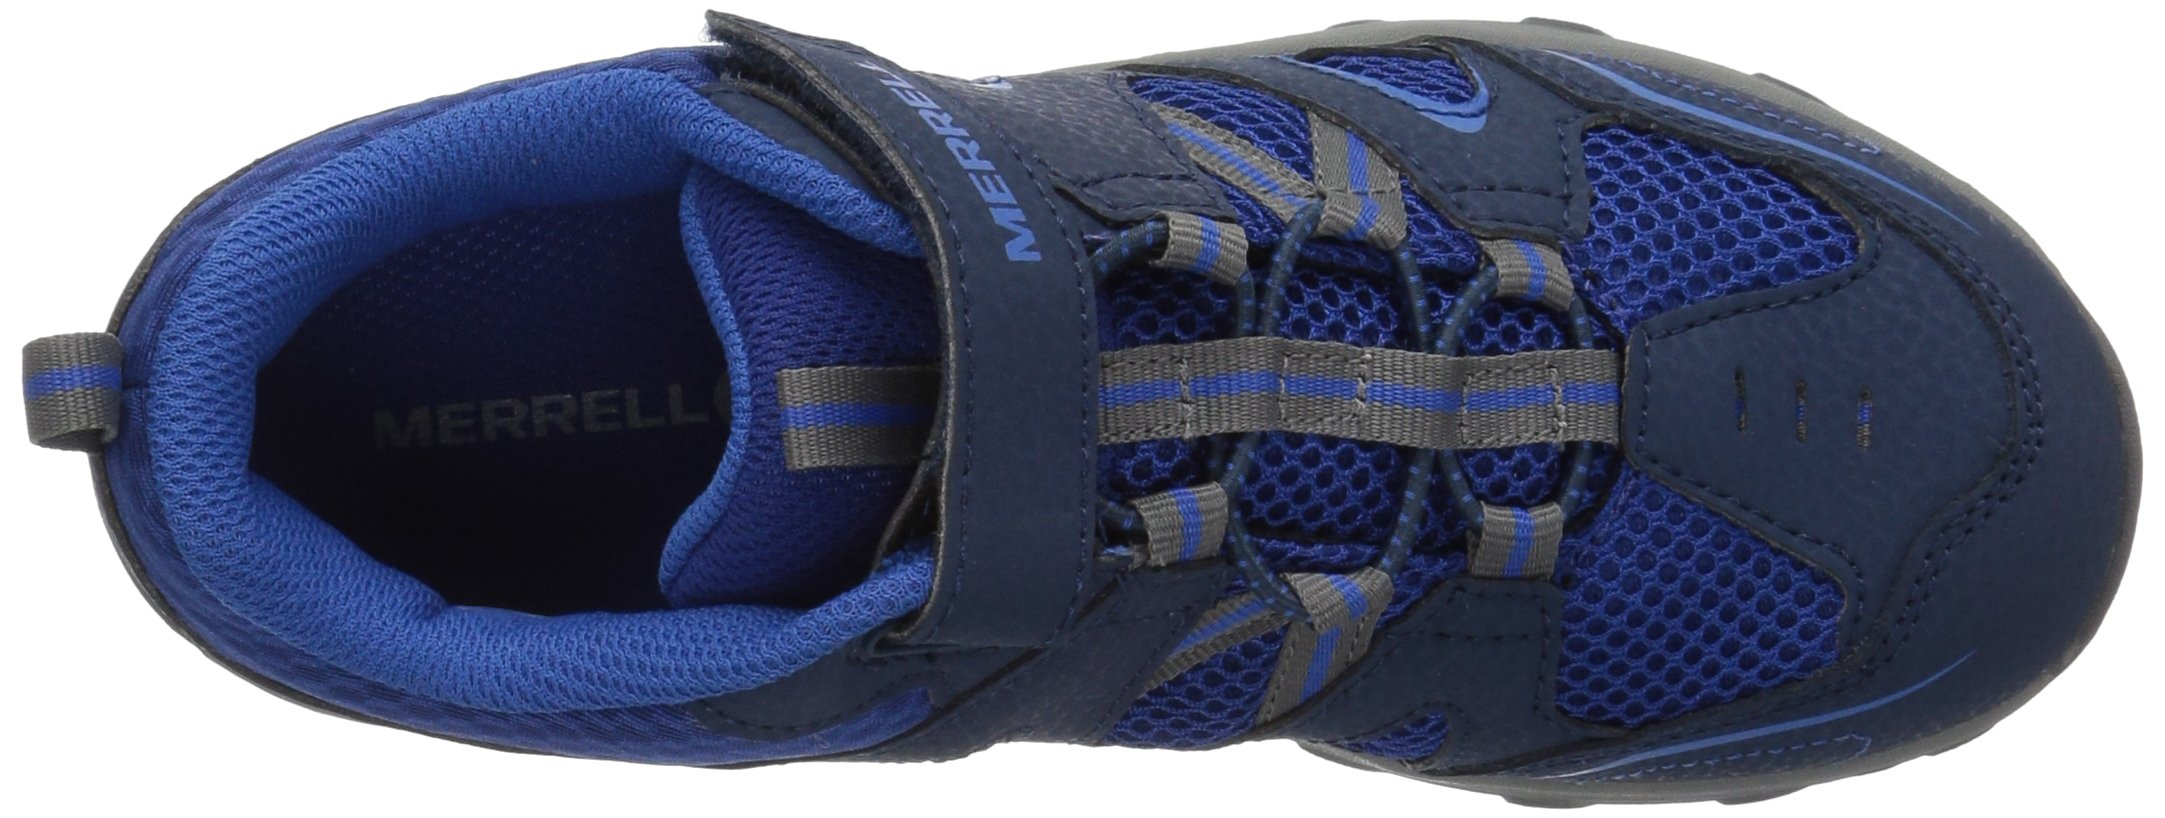 Merrell Trail Chaser Hiking Shoe, Navy, 4 M US Big Kid by Merrell (Image #8)